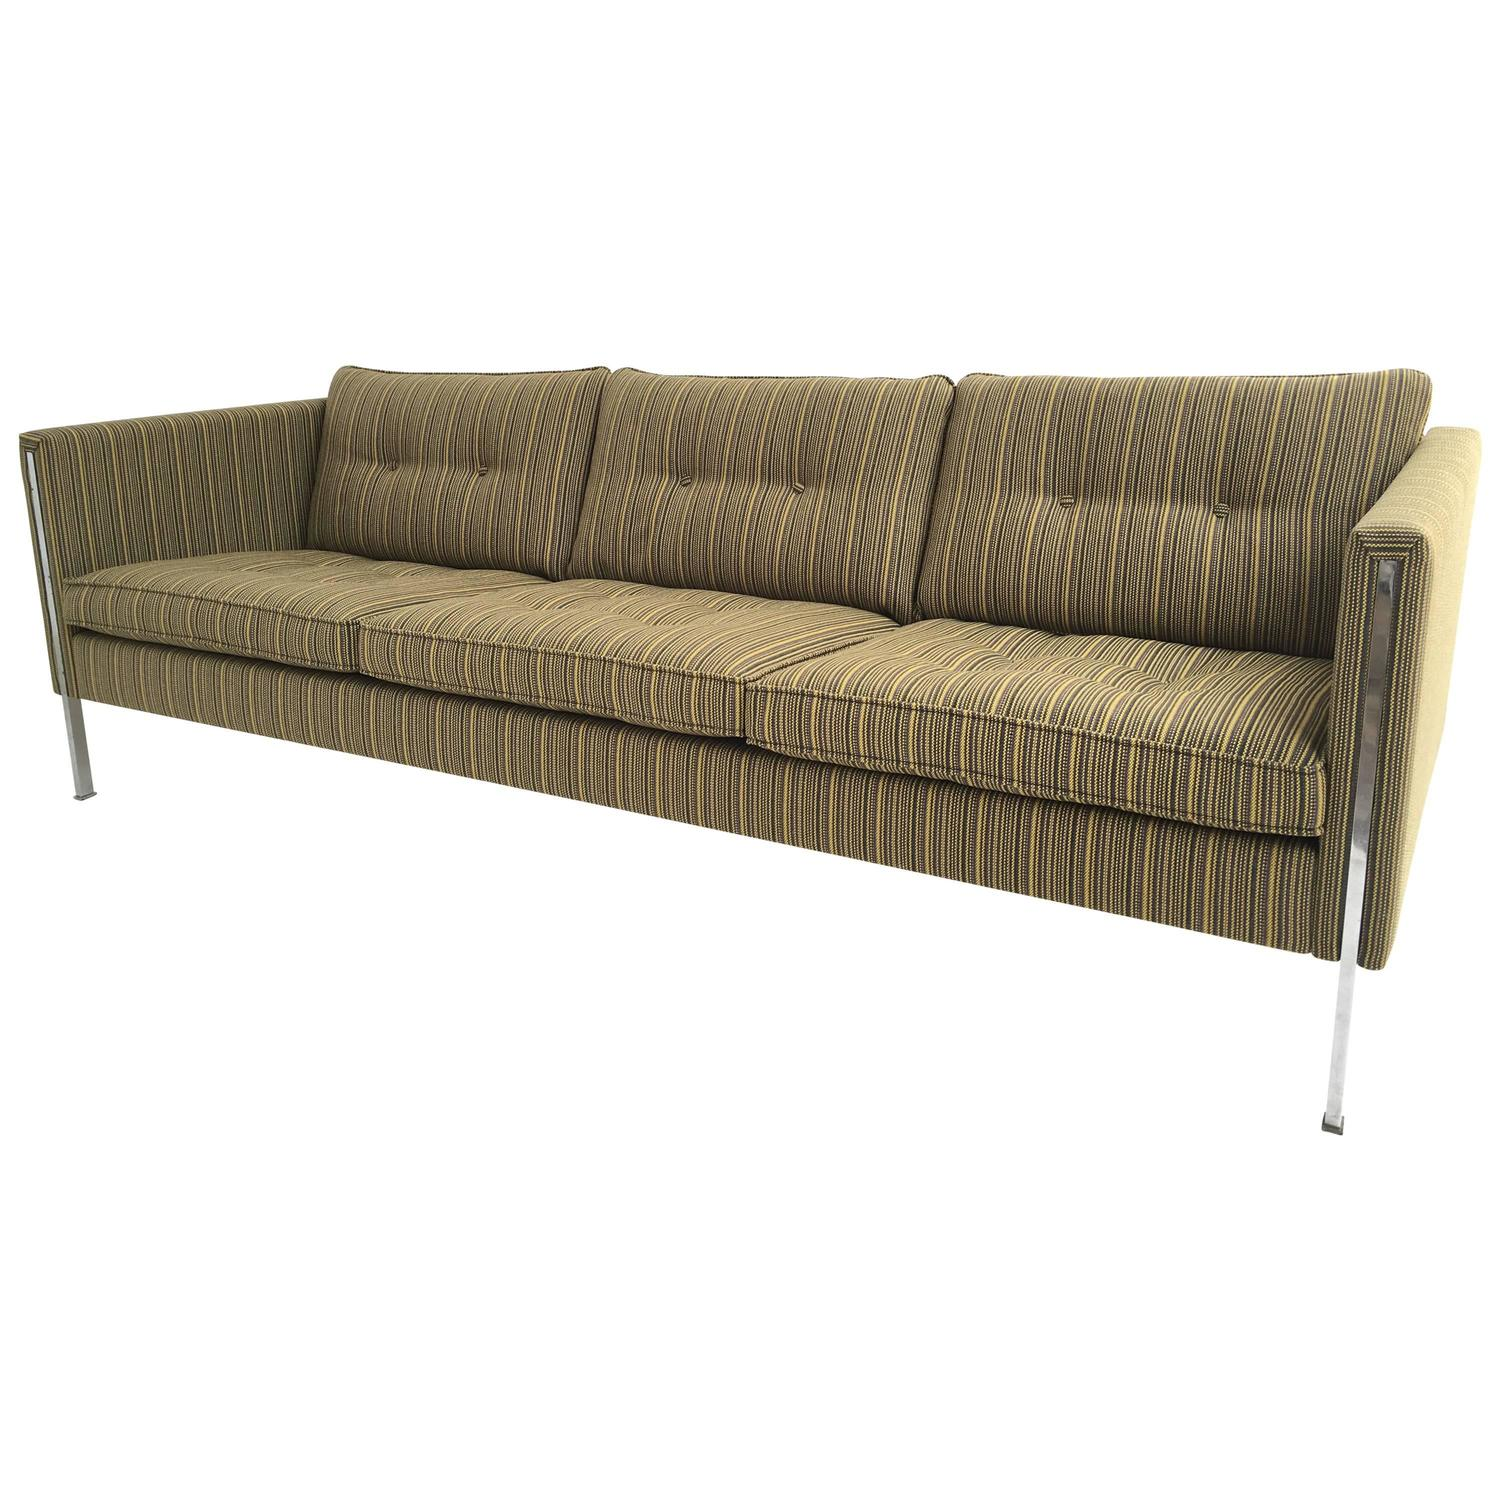 Pierre Paulin Sofa Pierre Paulin 442 3 Sofa For Artifort 1962 In Sophisticated De Ploeg Upholstery